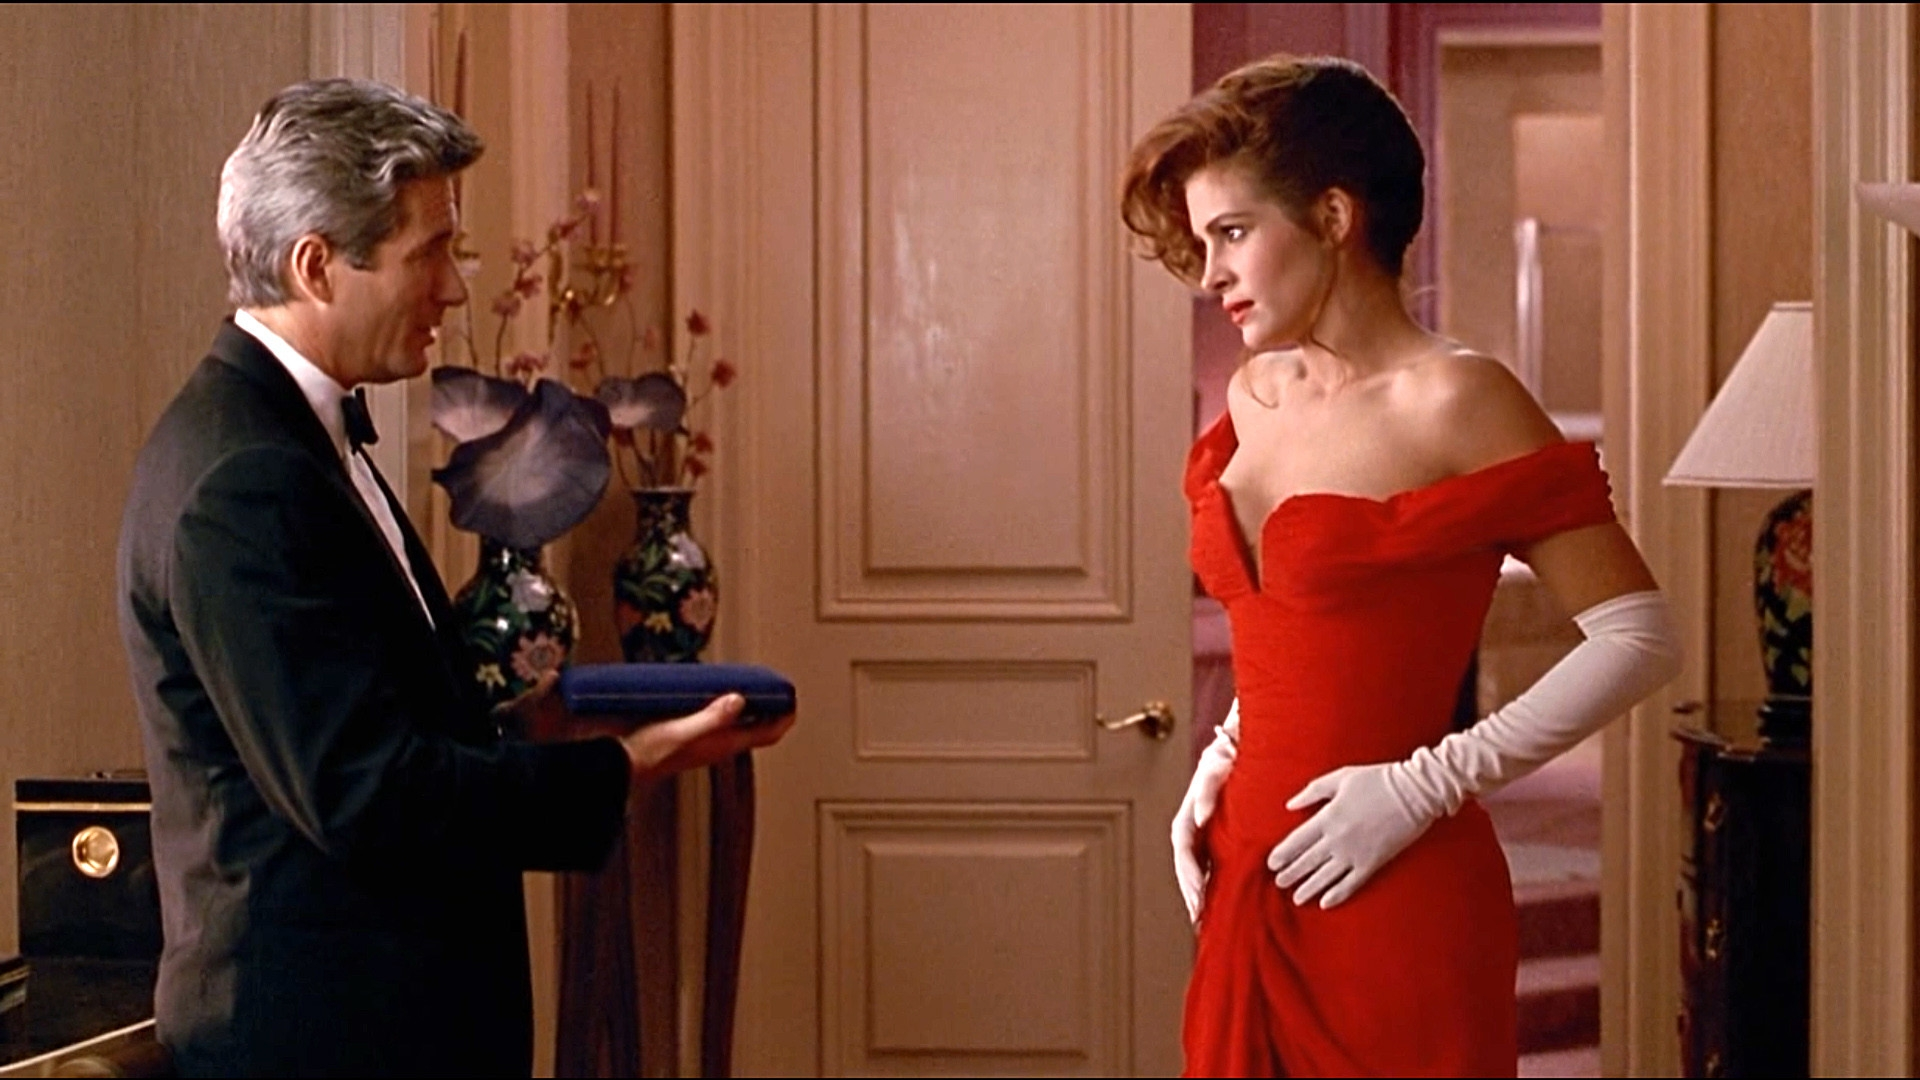 'Pretty Woman' nearly ended THIS way?